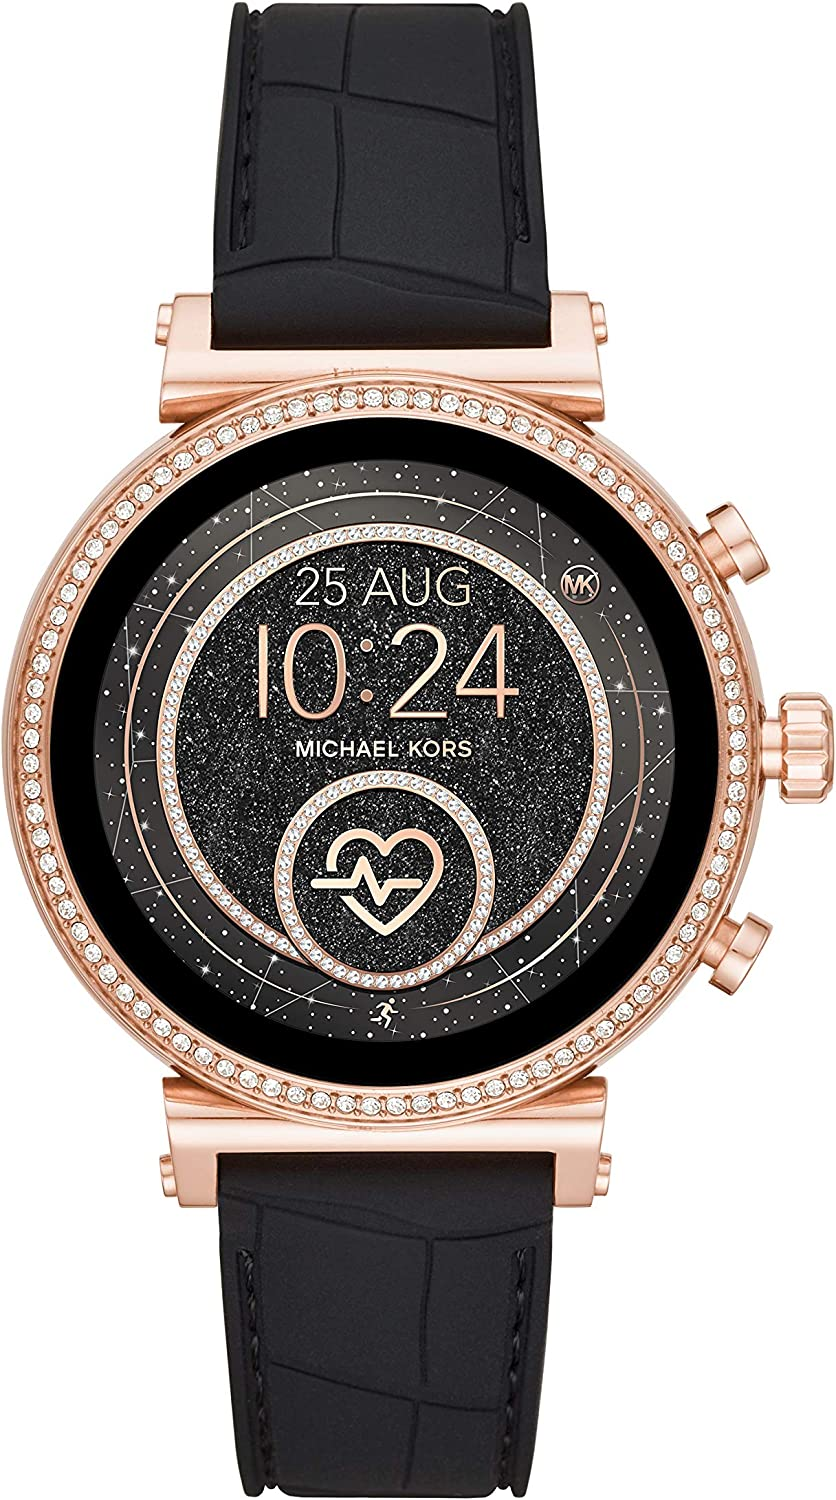 Michael Kors Access Gen 4 Sofie Smartwatch- Powered with Wear OS by Google with Heart Rate, GPS, NFC, and Smartphone Notifications